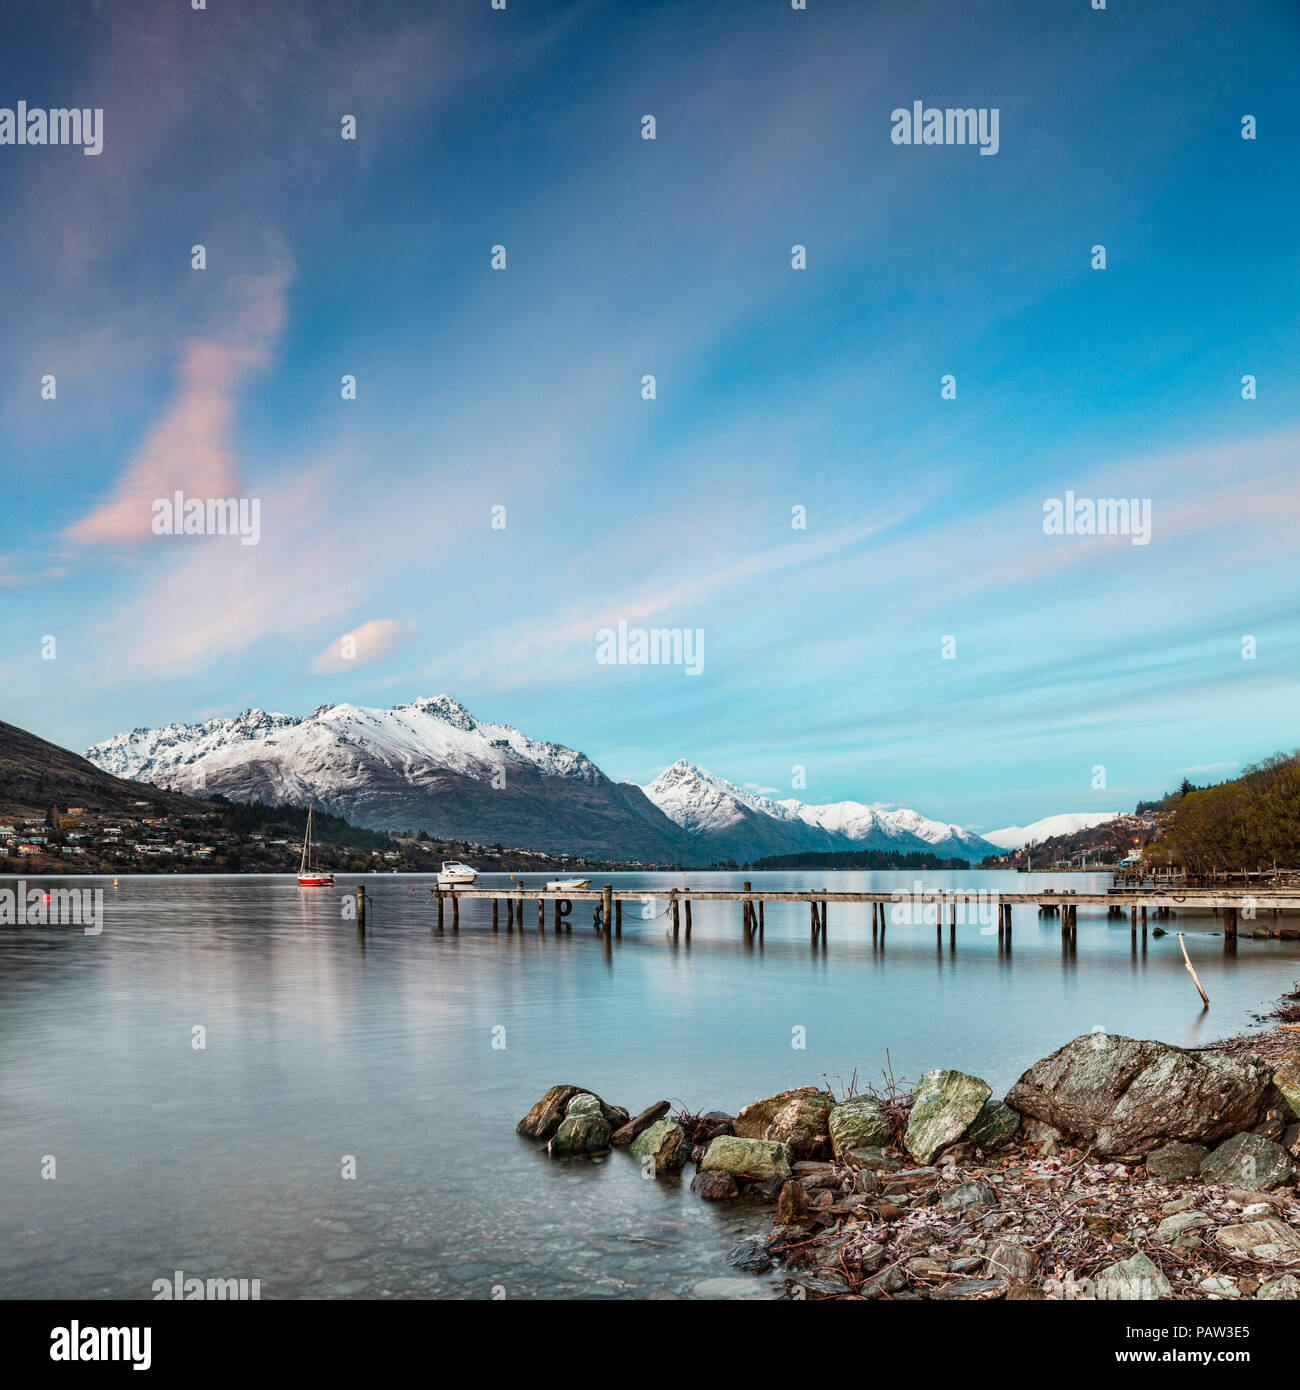 Le Lac Wakatipu Queenstown Nouvelle Zelande Photo Stock